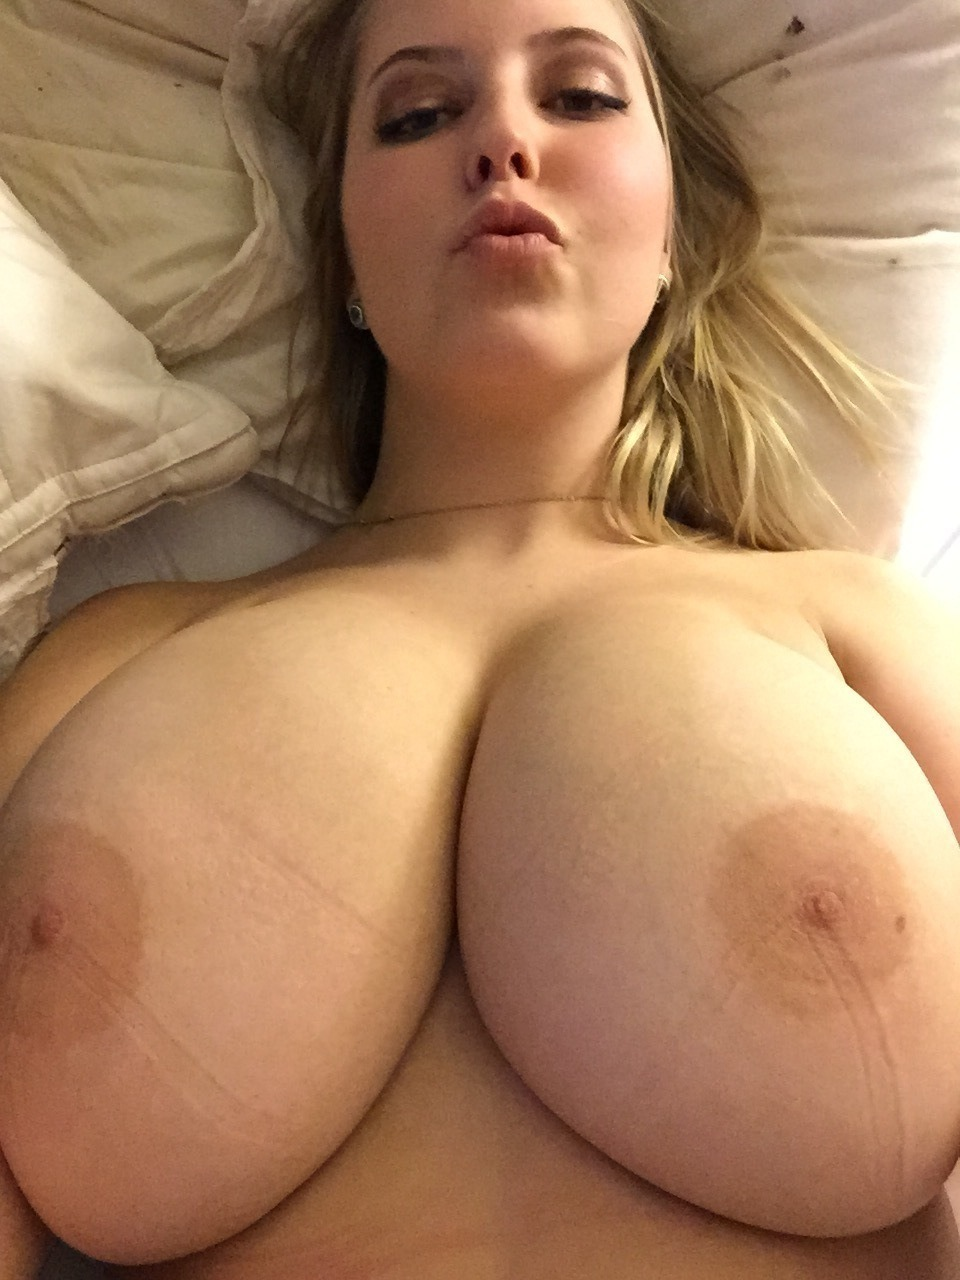 There Large natural breasts amateur